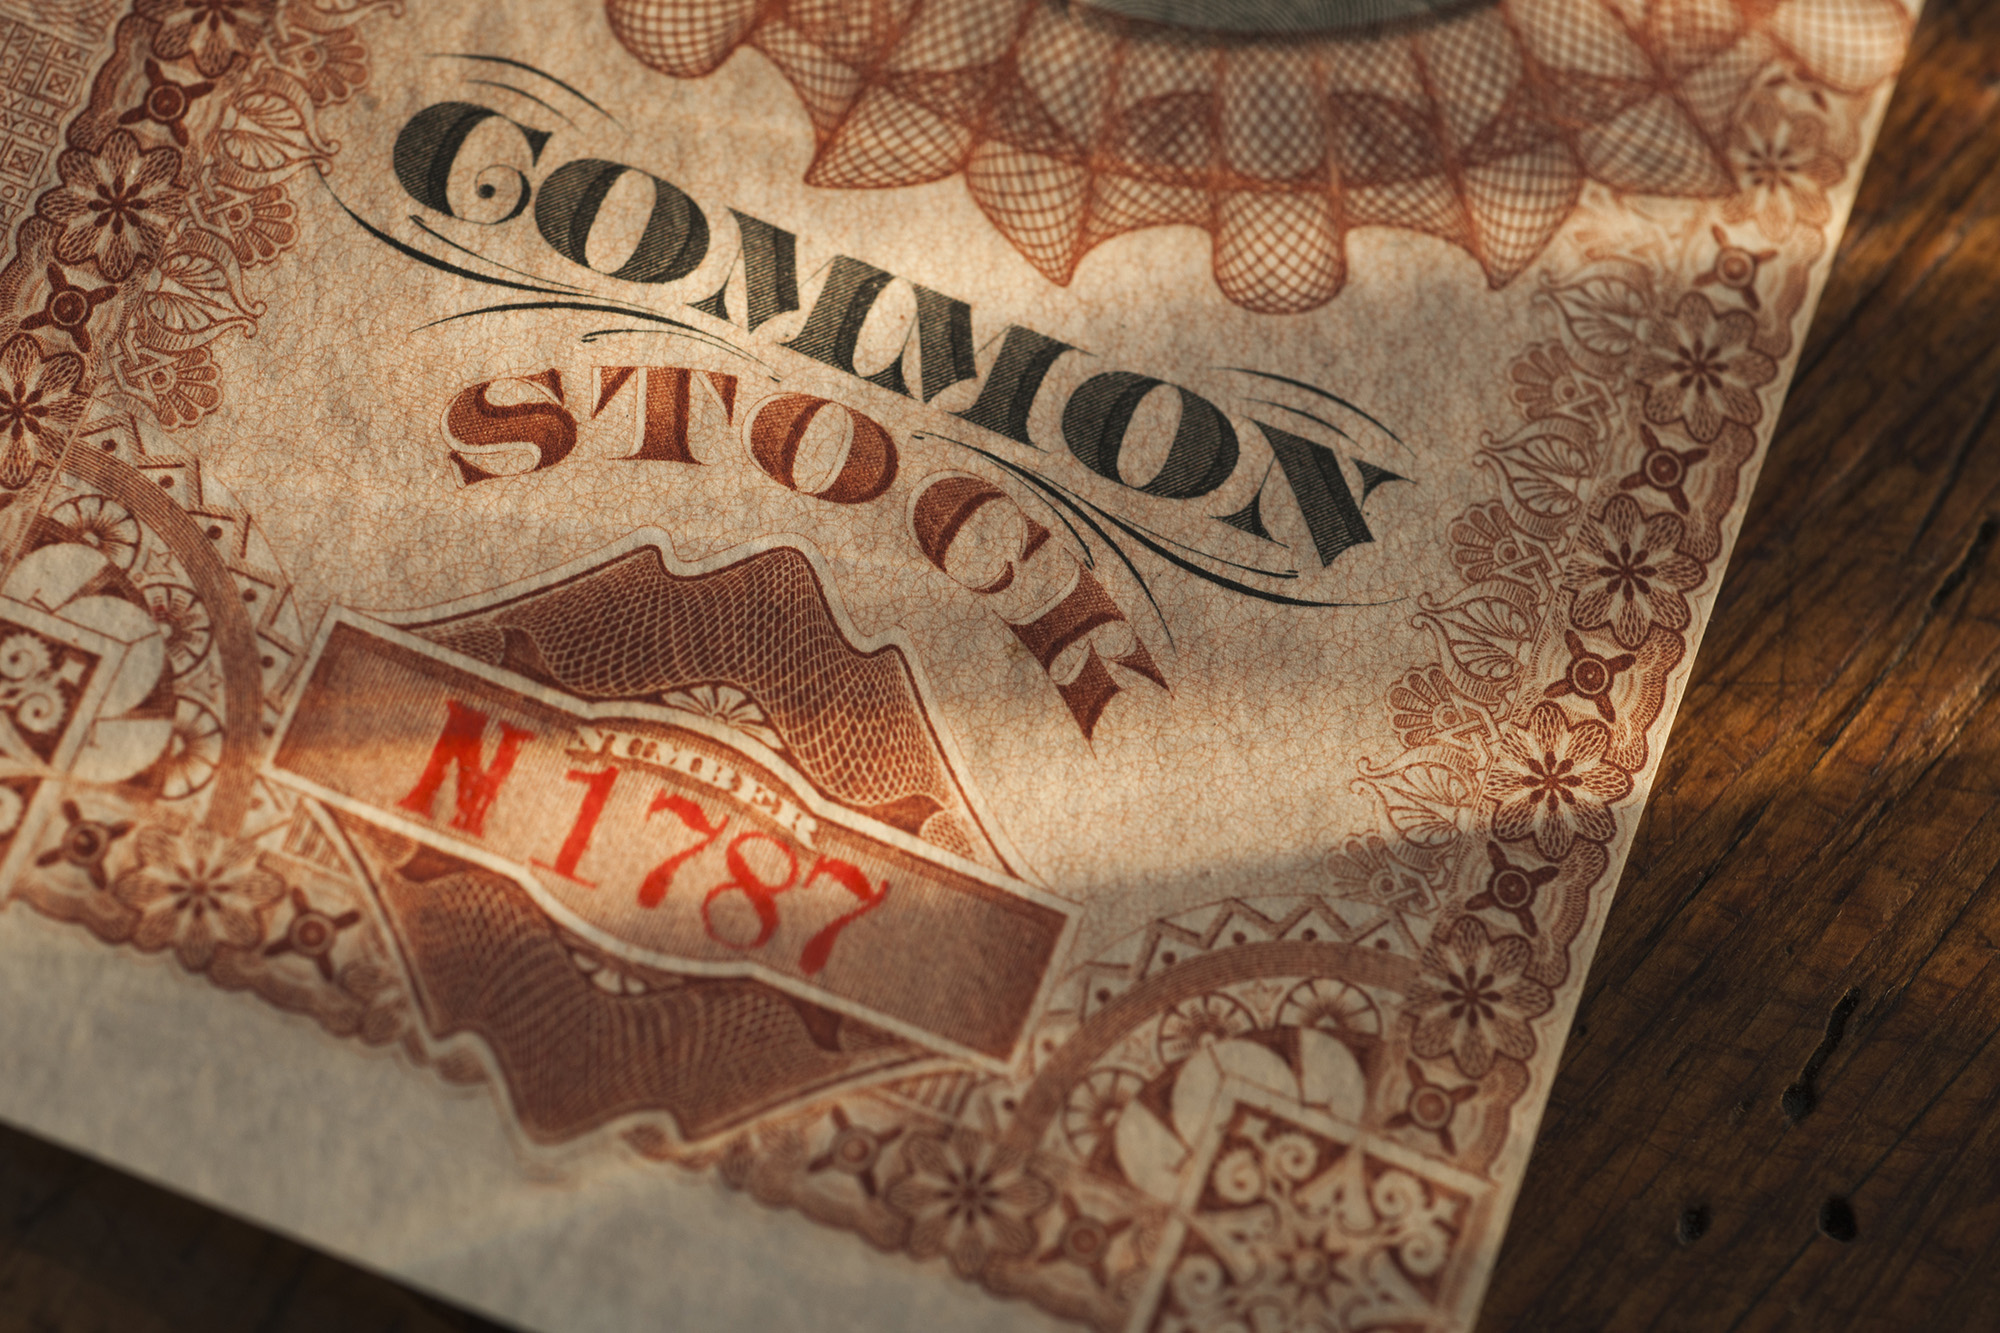 How To Buy Stock Book Are Stock Options Worth The Effort? Investing Us News